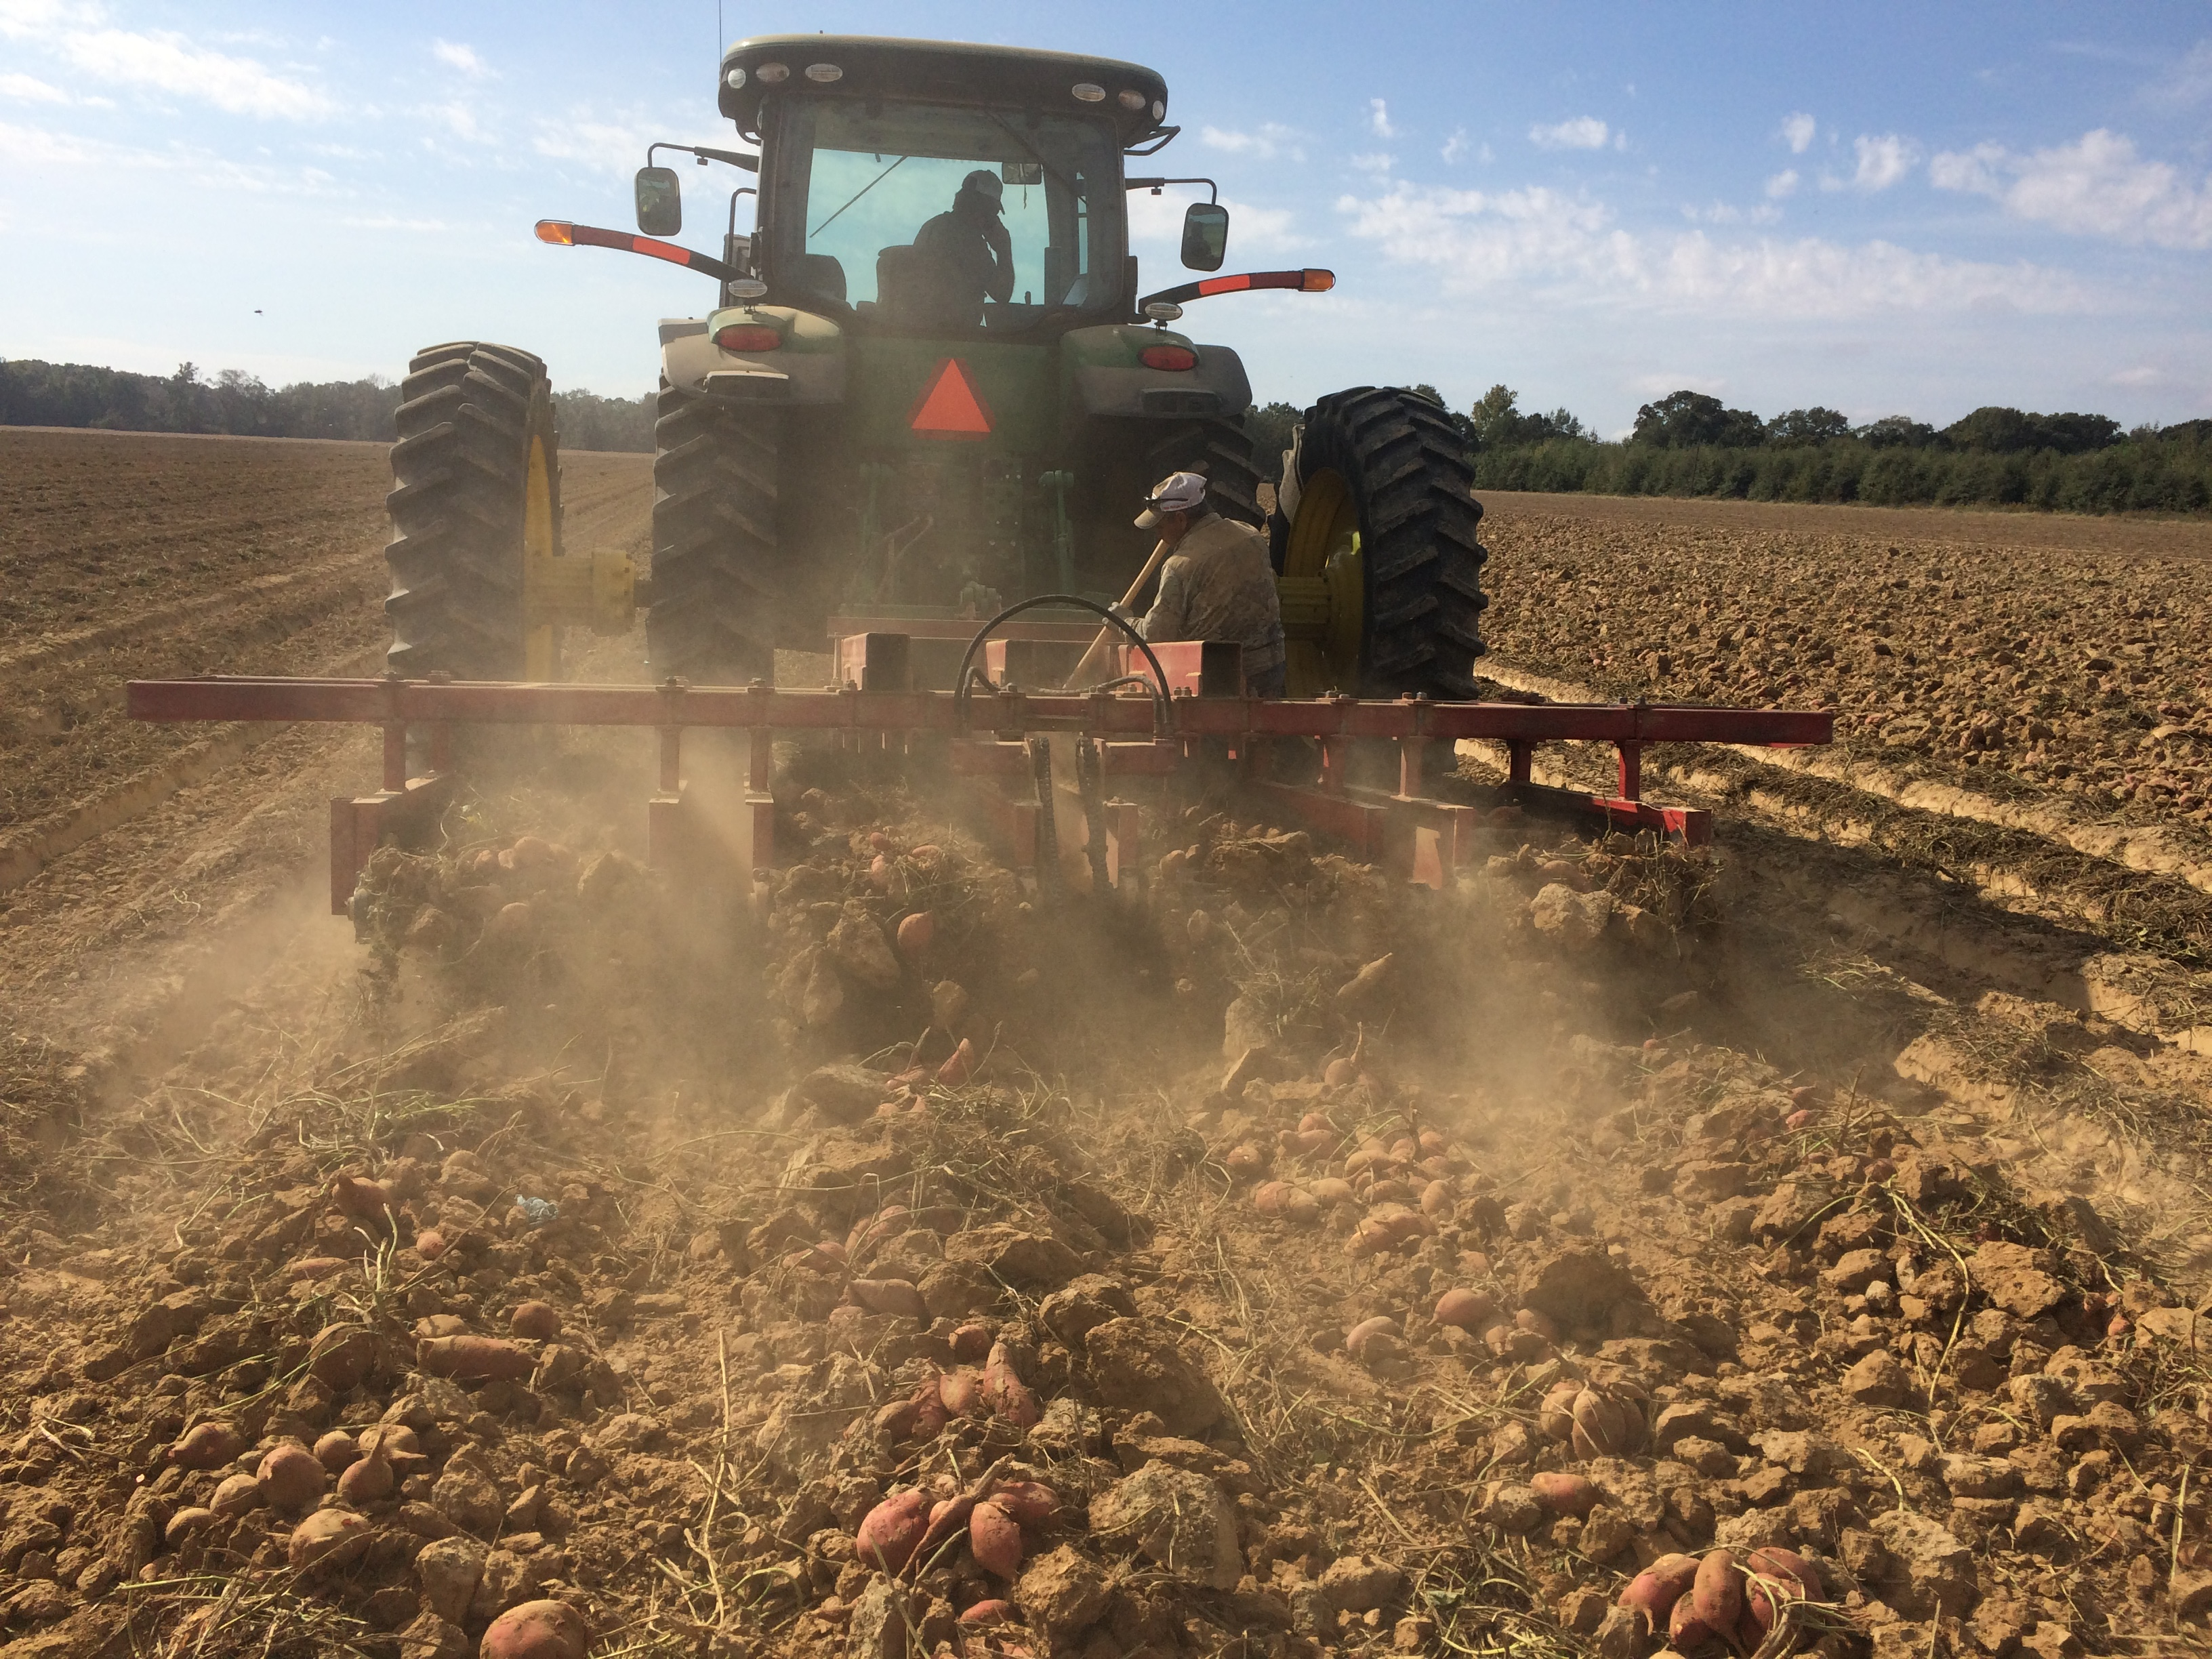 Sweet potato producers see weather-related losses